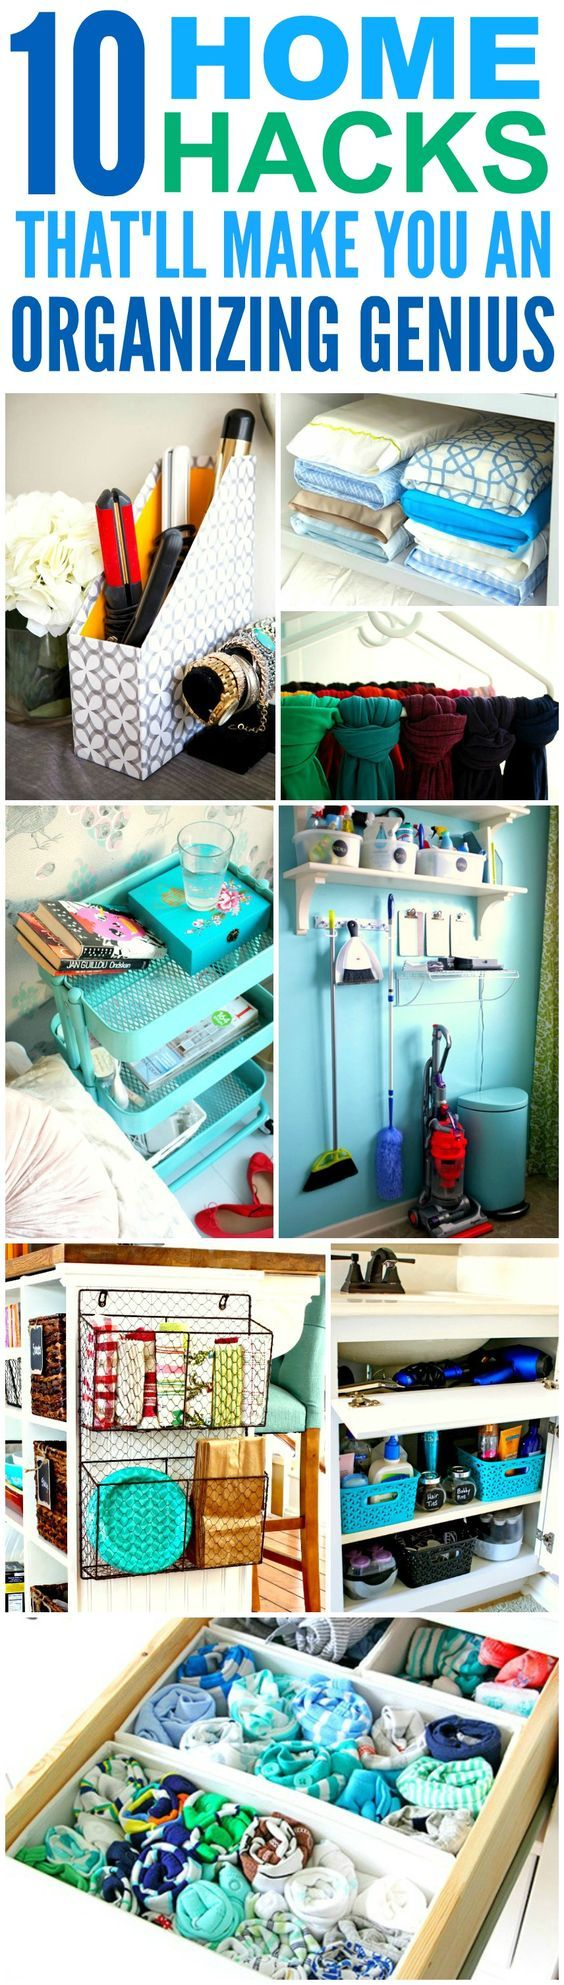 10 Home Hacks That Will Make You an Organizing Genius is part of Home Hacks That Will Make You An Organizing Genius - No matter what time of the year it is, it's always time to get organized  Why  Well when the house gets out…